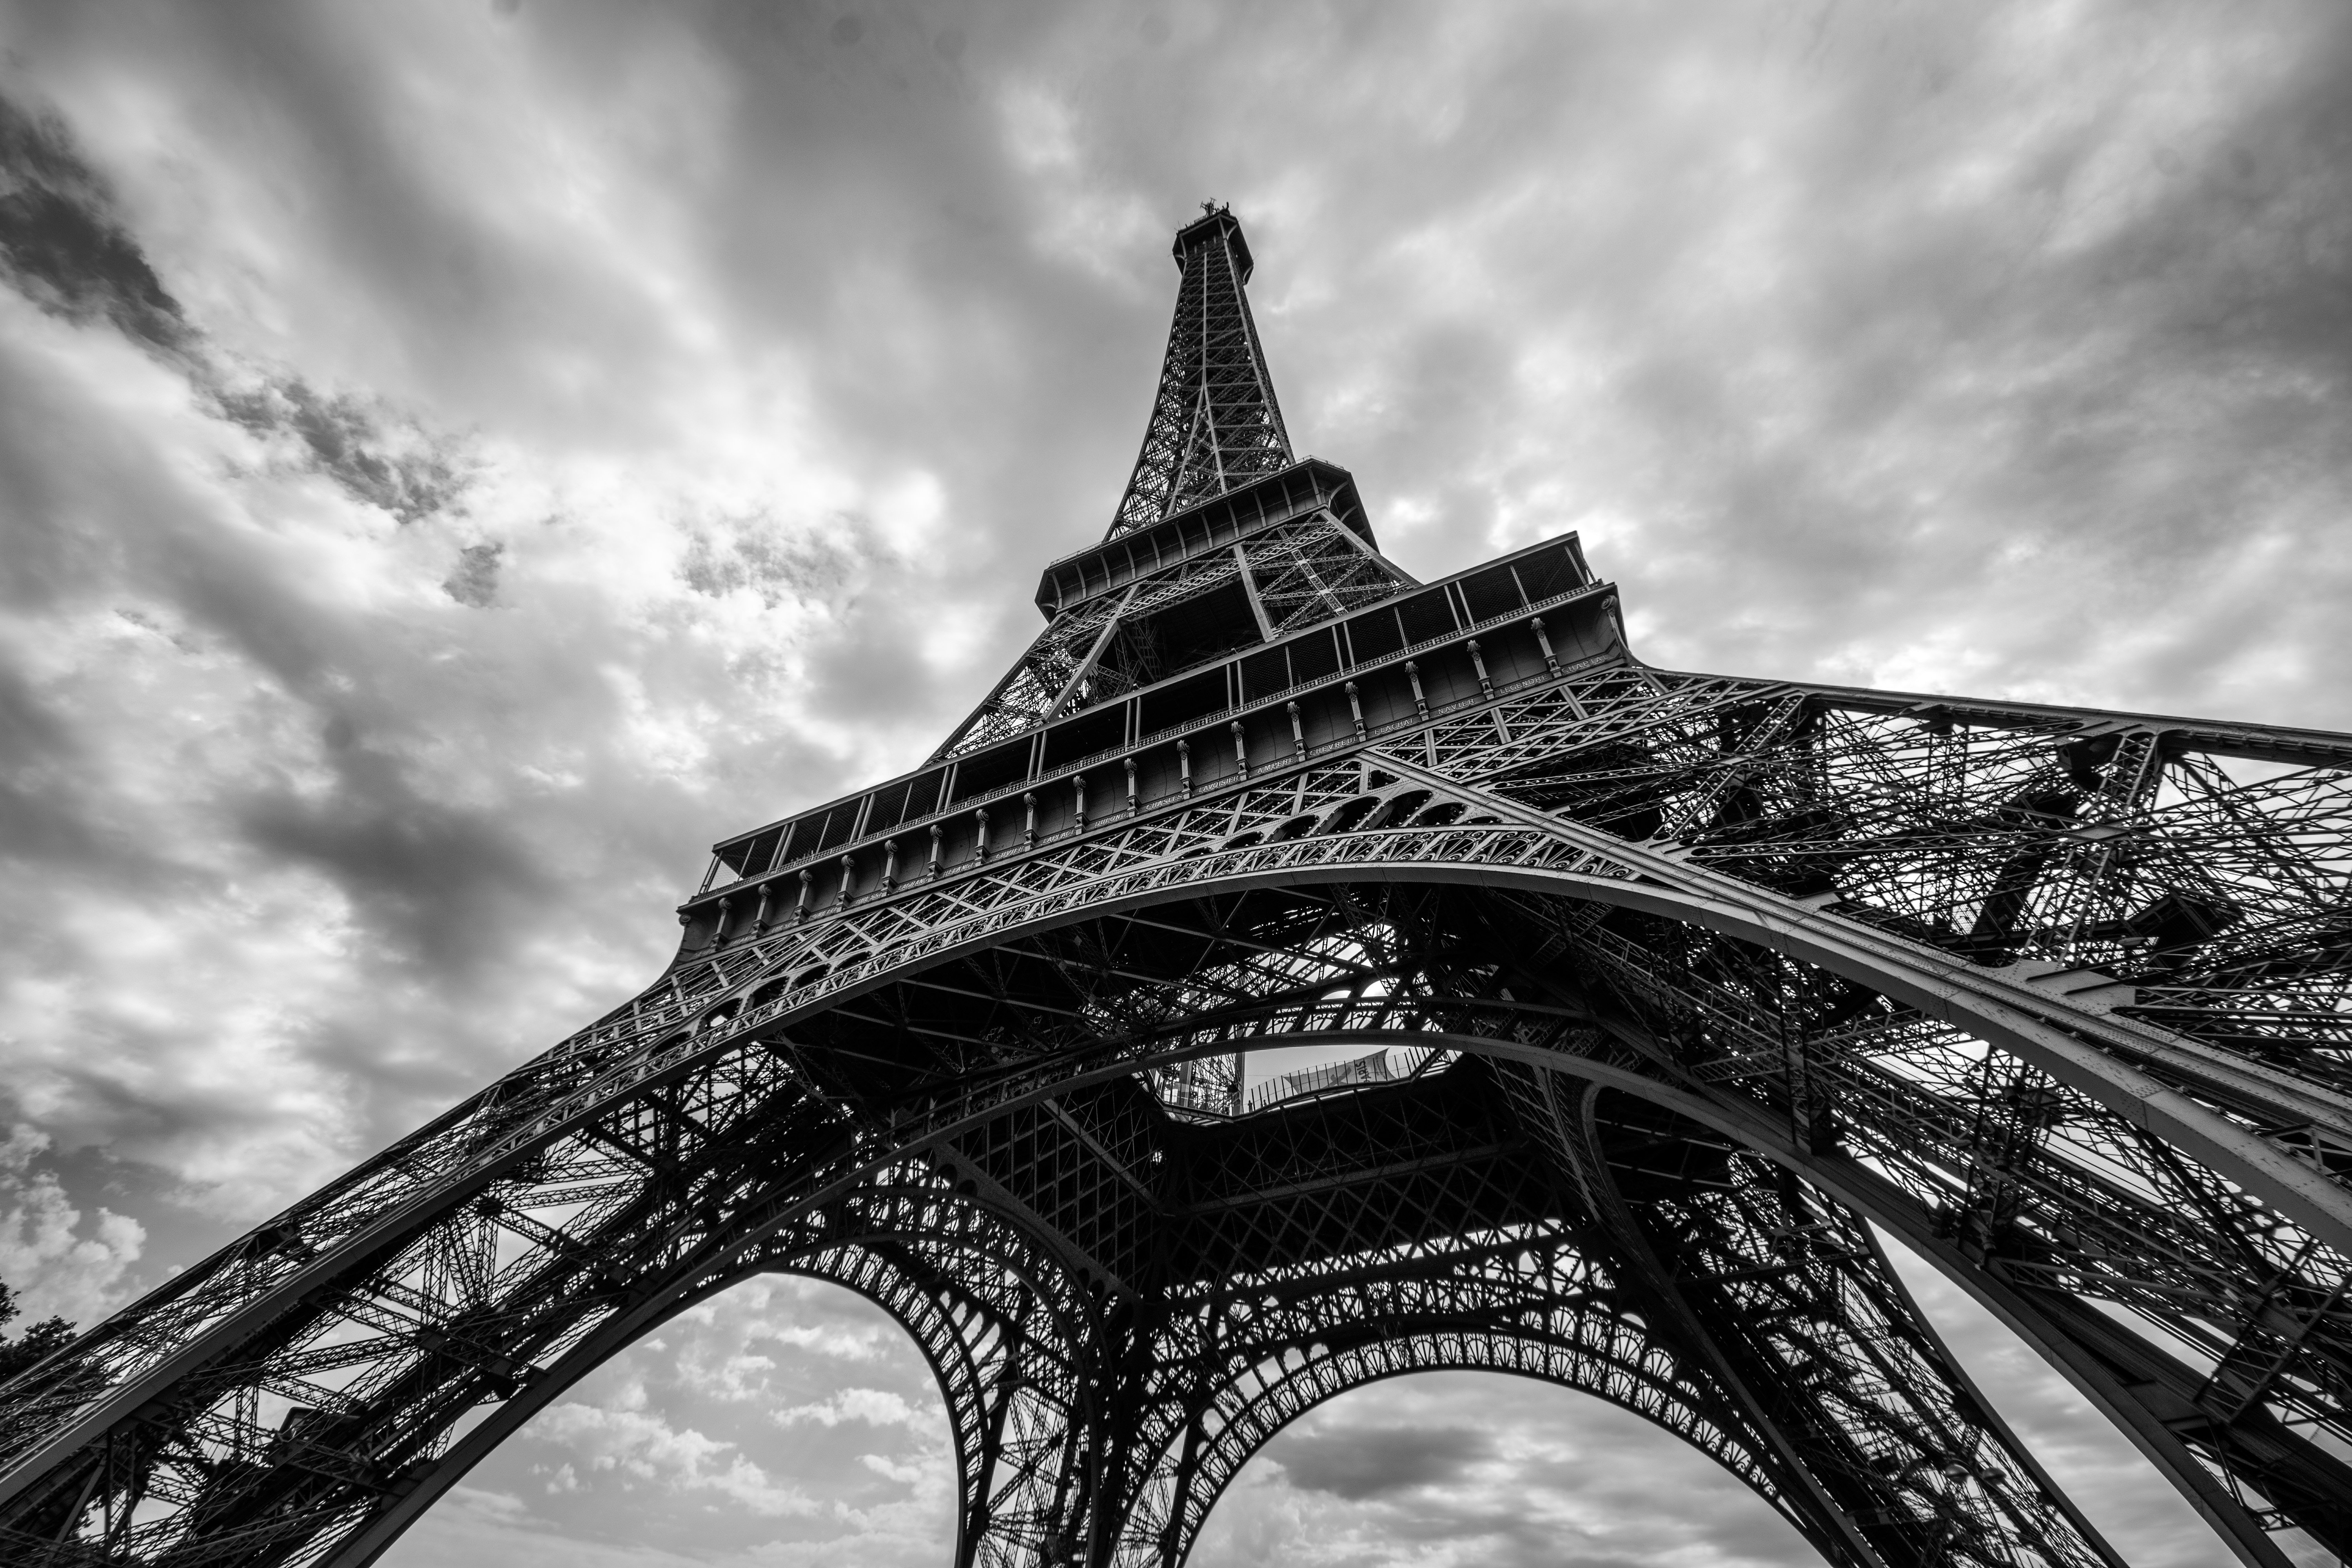 Distinctive view of the Eiffel Tower by Travel Anubhav.